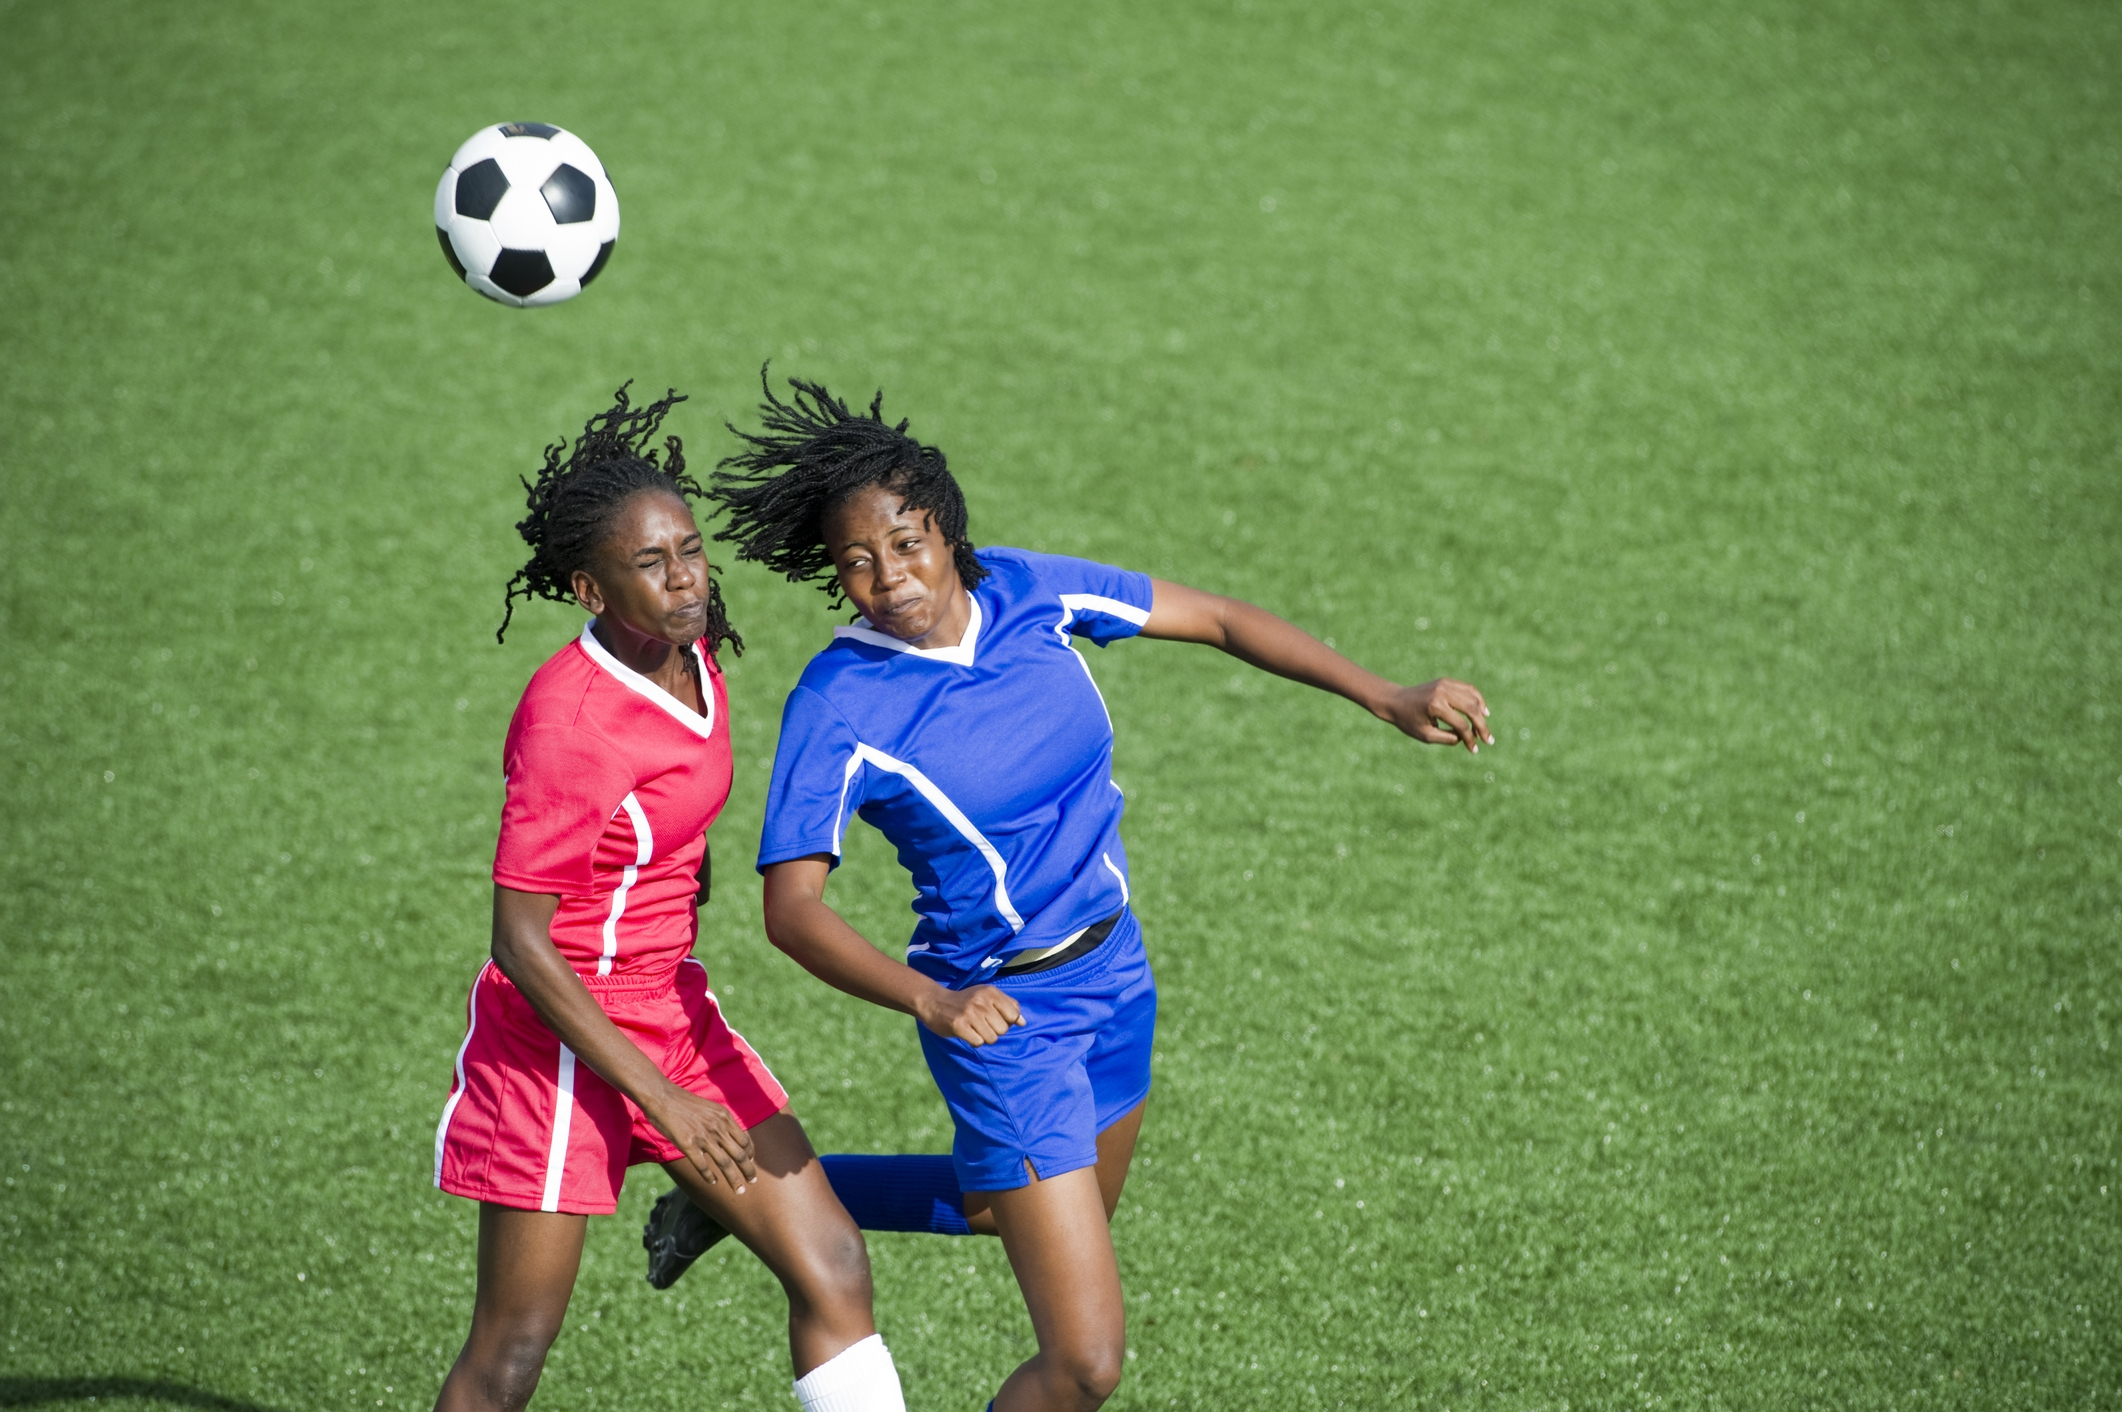 Two professional women football players heading a ball